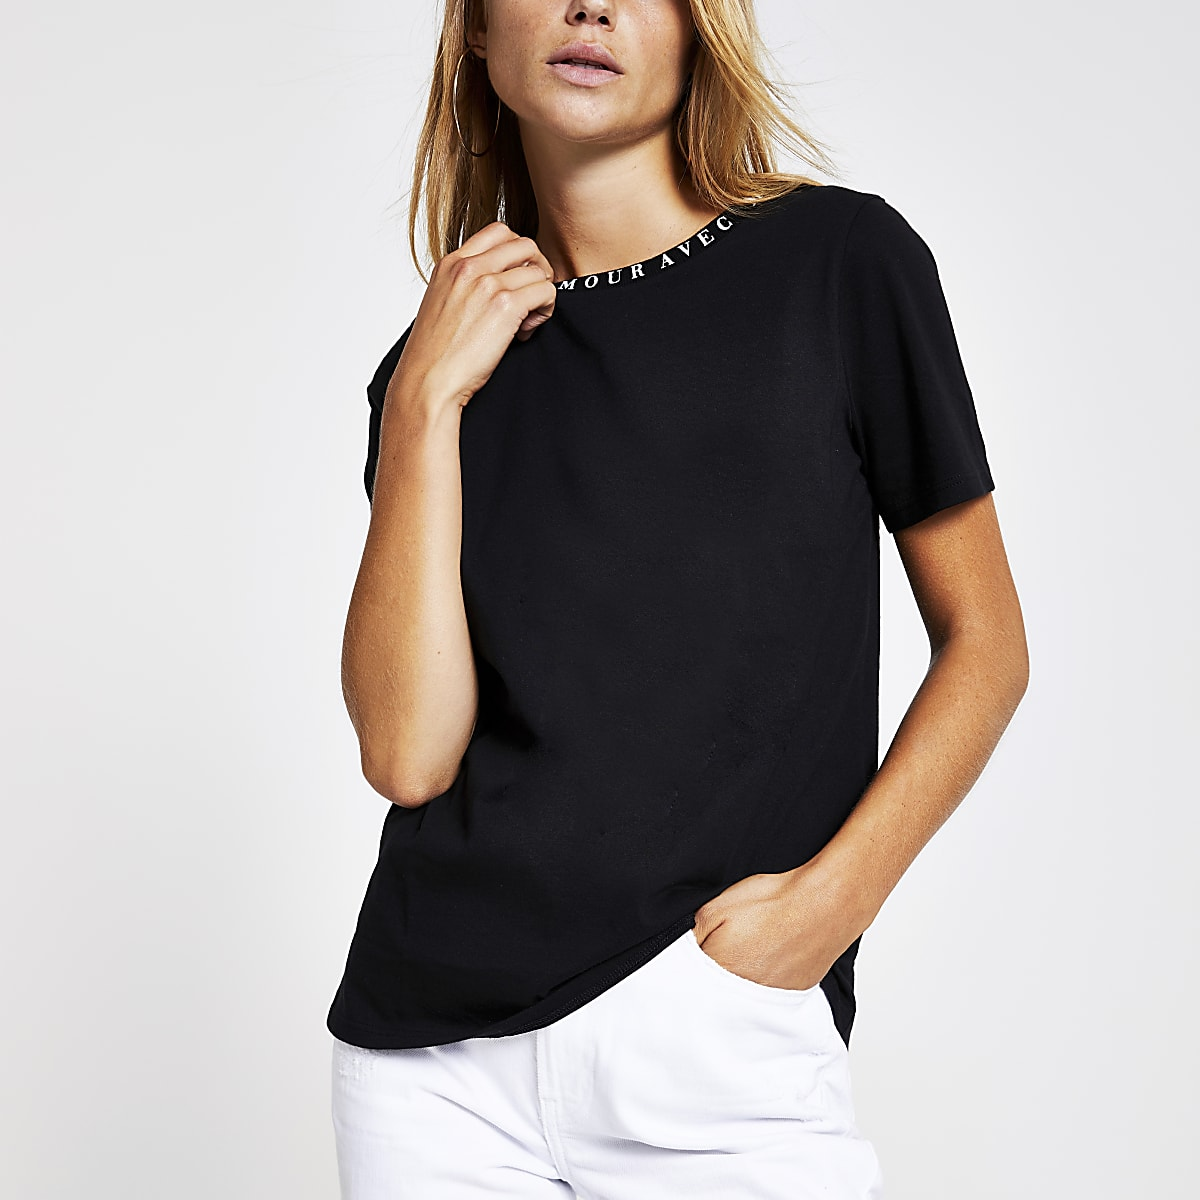 Black 'Mon amour' neck print T-shirt